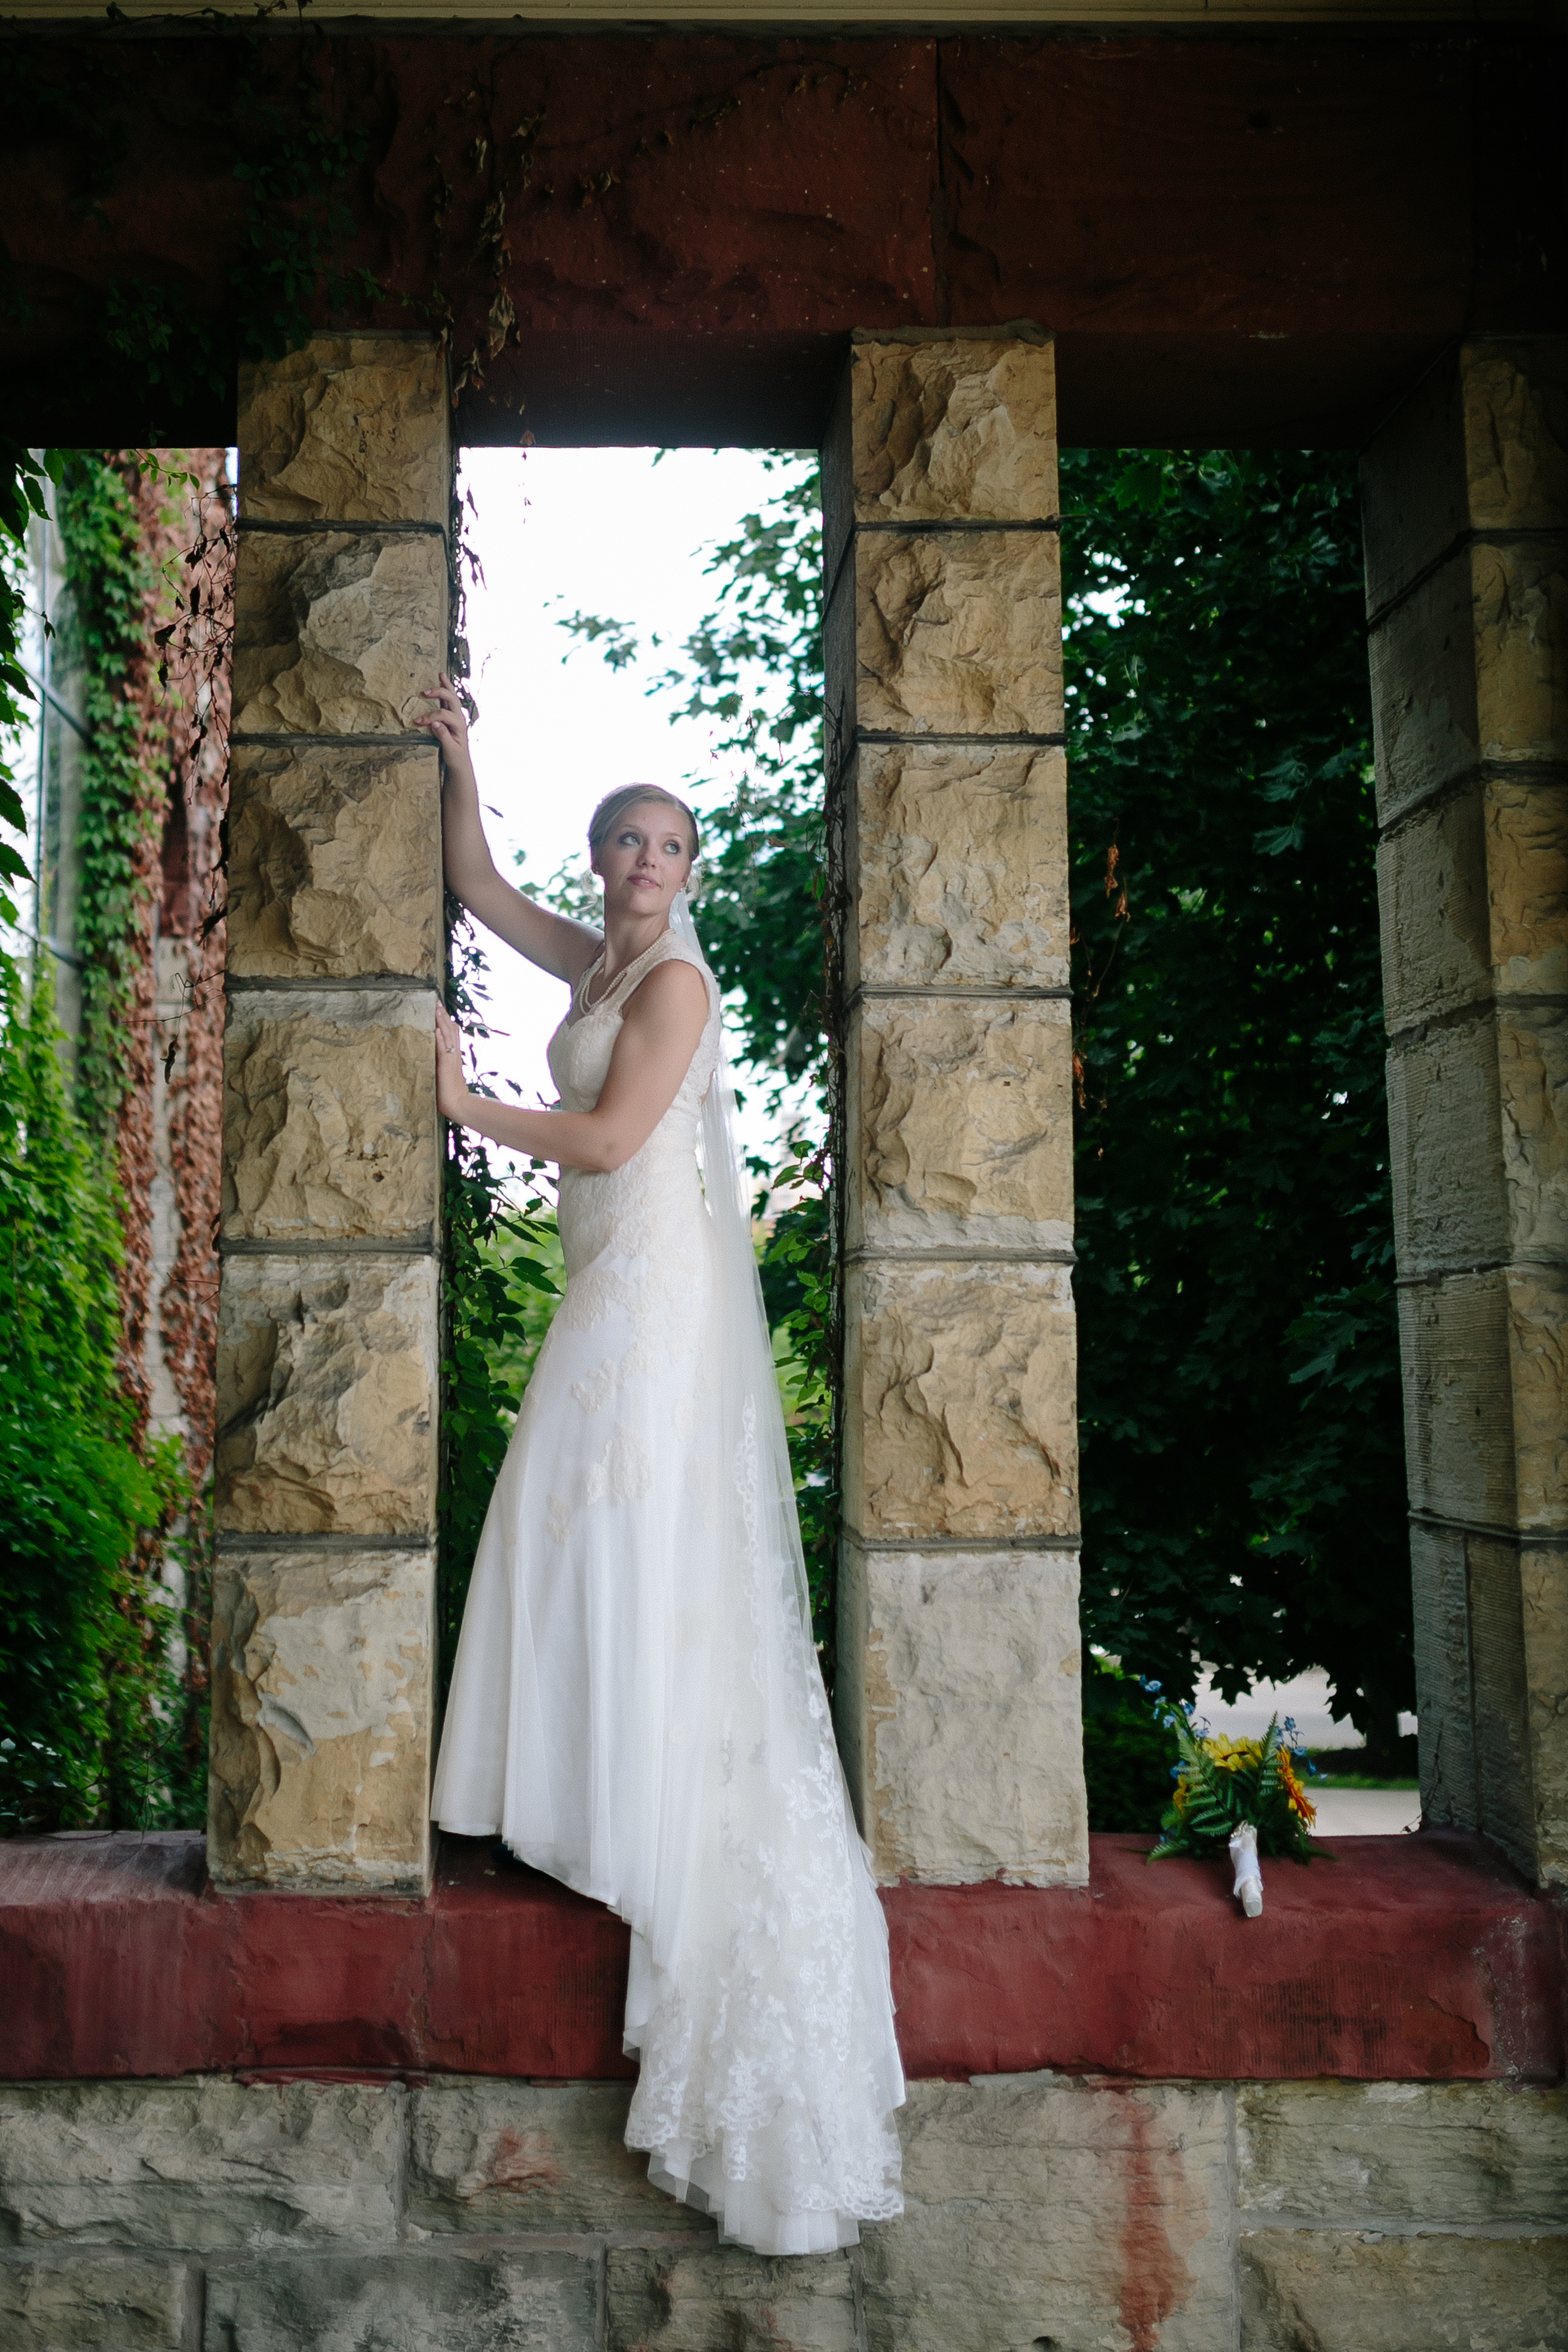 Jacob Henry Mansion Estate Joliet, Illinois - Wayne & Leanne Married - Corrie Mick Photography-153.jpg